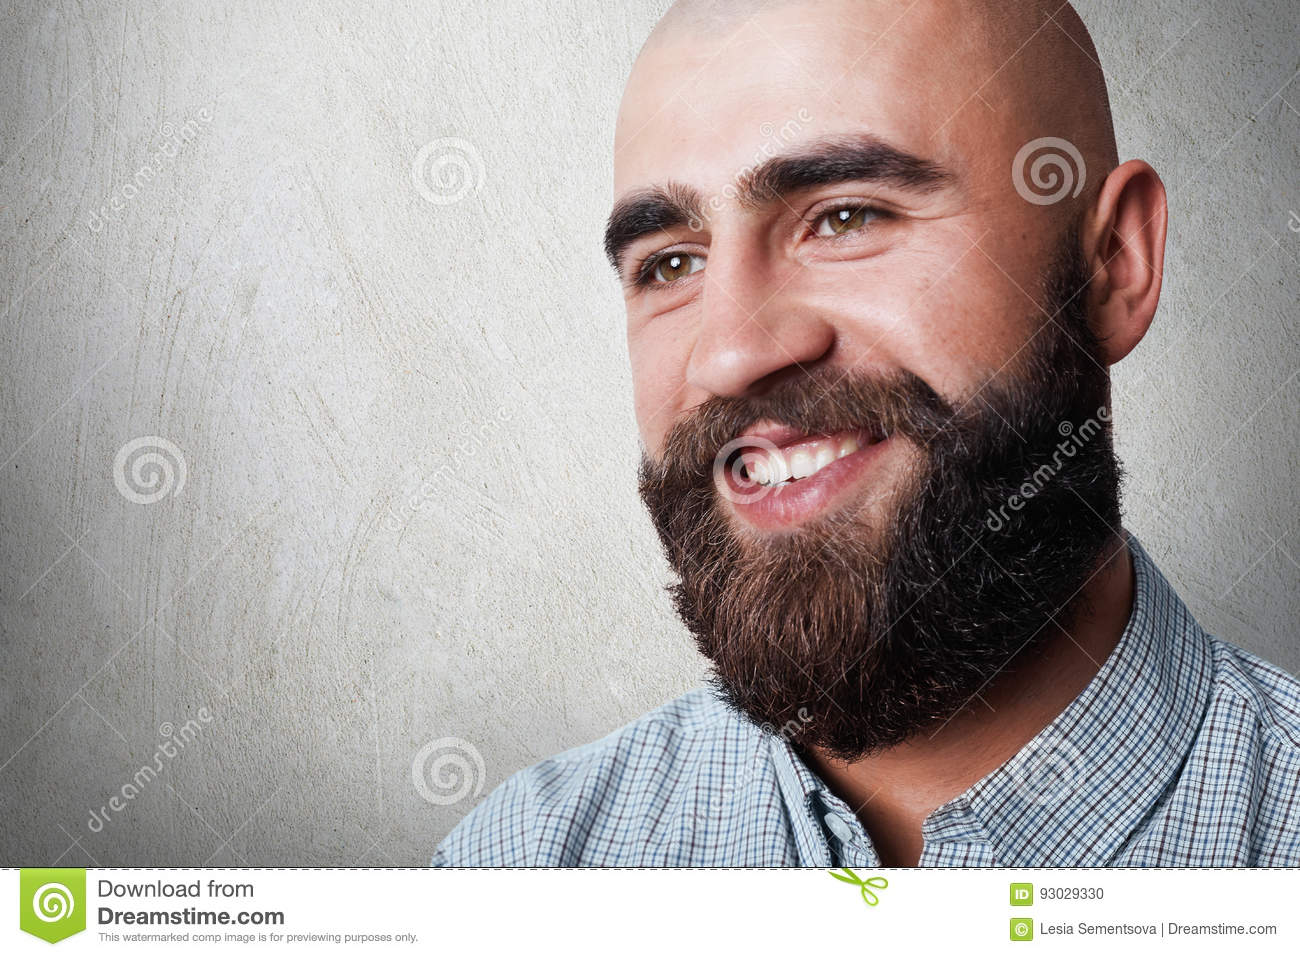 A portrait of handsome bald man with thick beard and mustache having sincere smile while posing against white background. A fashio